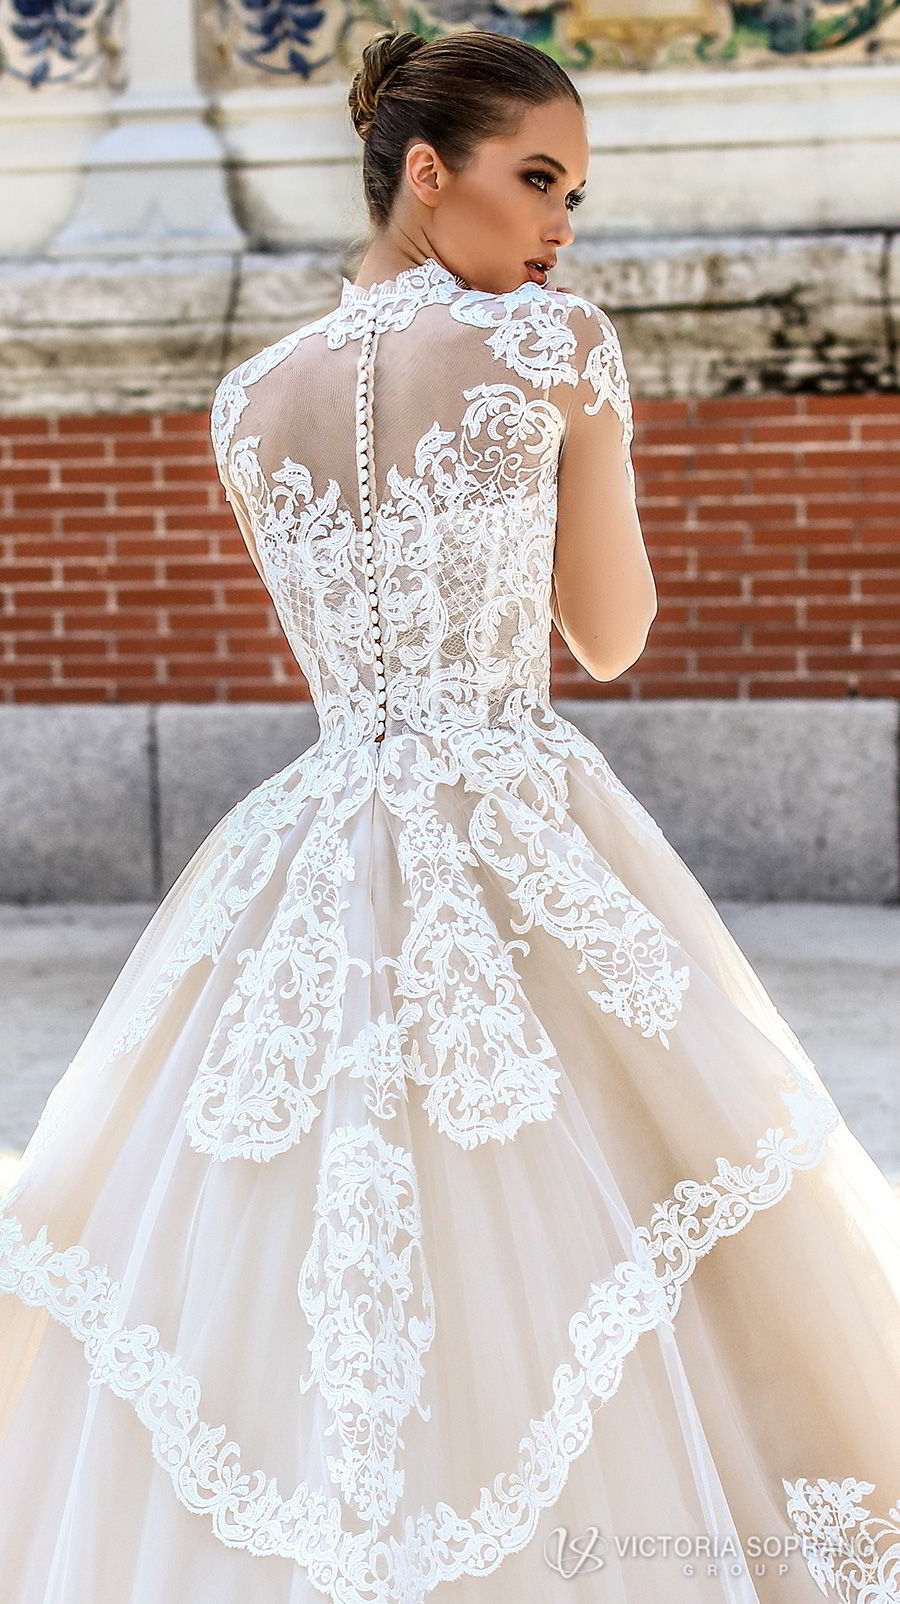 victoria soprano 2018 bridal long sleeves illusion high neck sweetheart neckline heavily embellished bodice princess a line wedding dress sheer lace back chapel train (monique) zbv